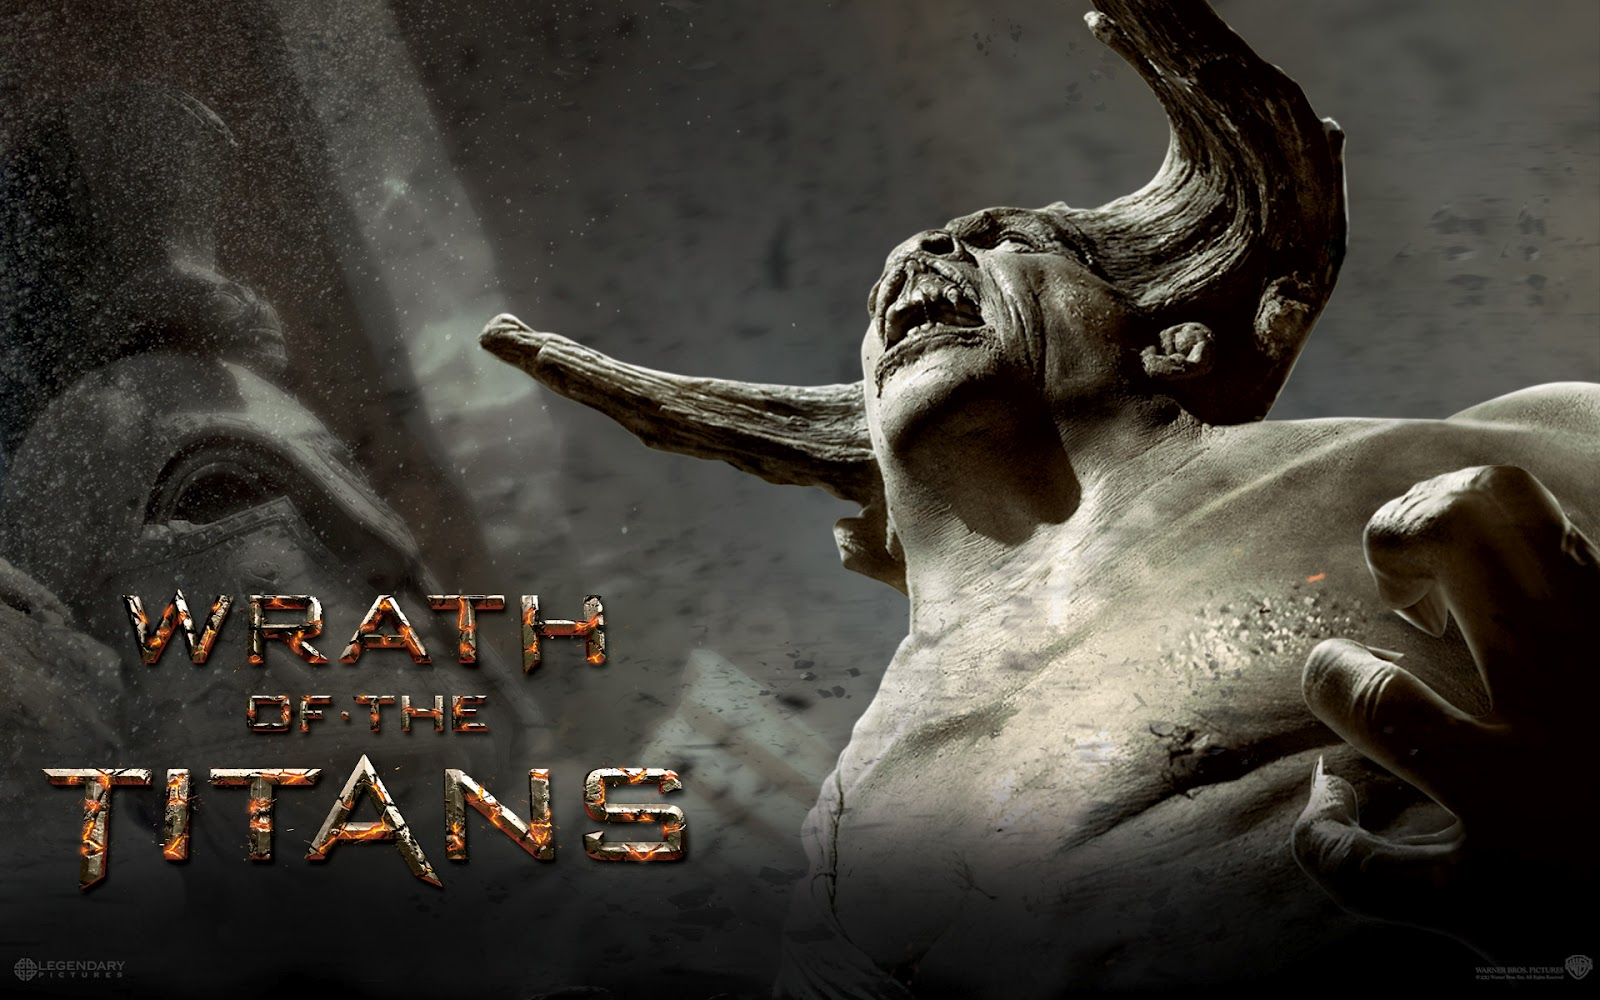 http://3.bp.blogspot.com/-GnfOBgLanhw/T0aP9No8wLI/AAAAAAAAFPQ/7IvT8PZNECM/s1600/Wrath+of+The+Titans+11+wallpaper_1_1920x1200.jpg